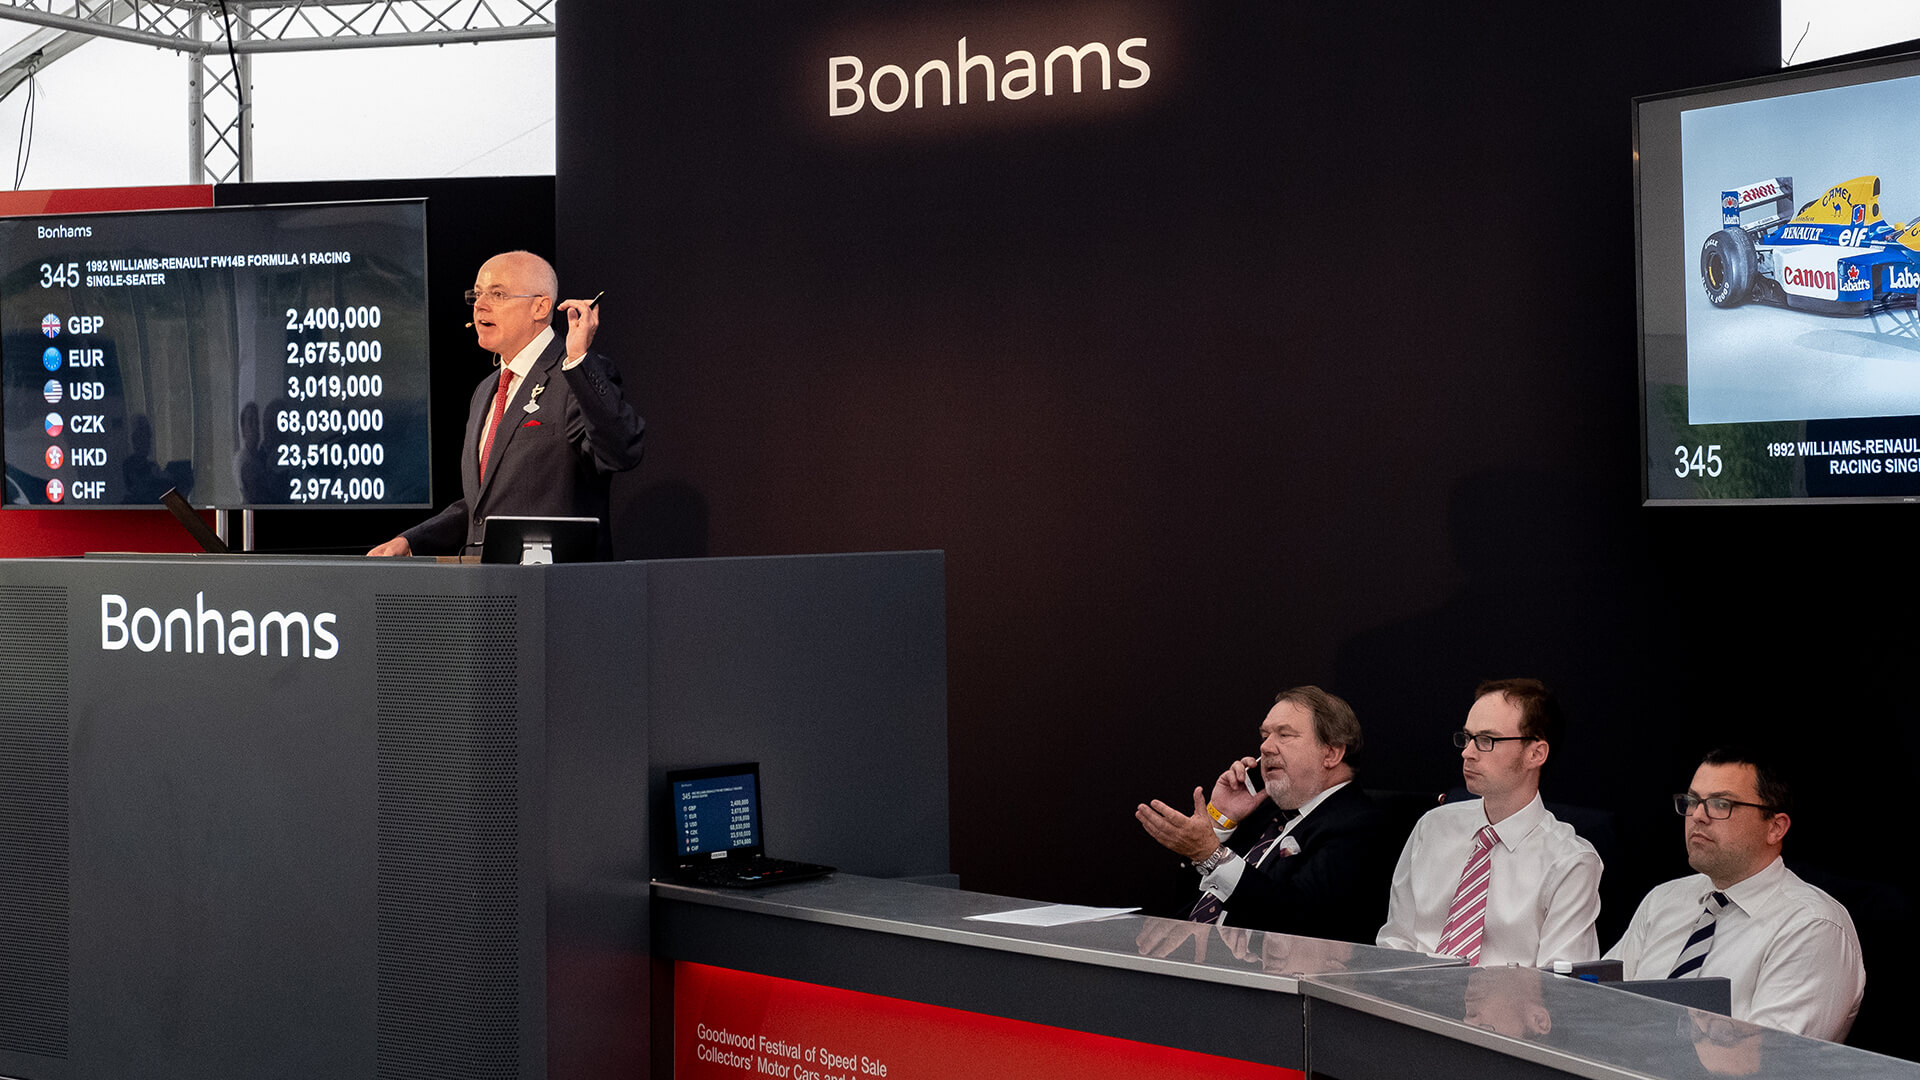 Bonhams' £7.9m Goodwood Festival sale: Mansell's Williams wins again